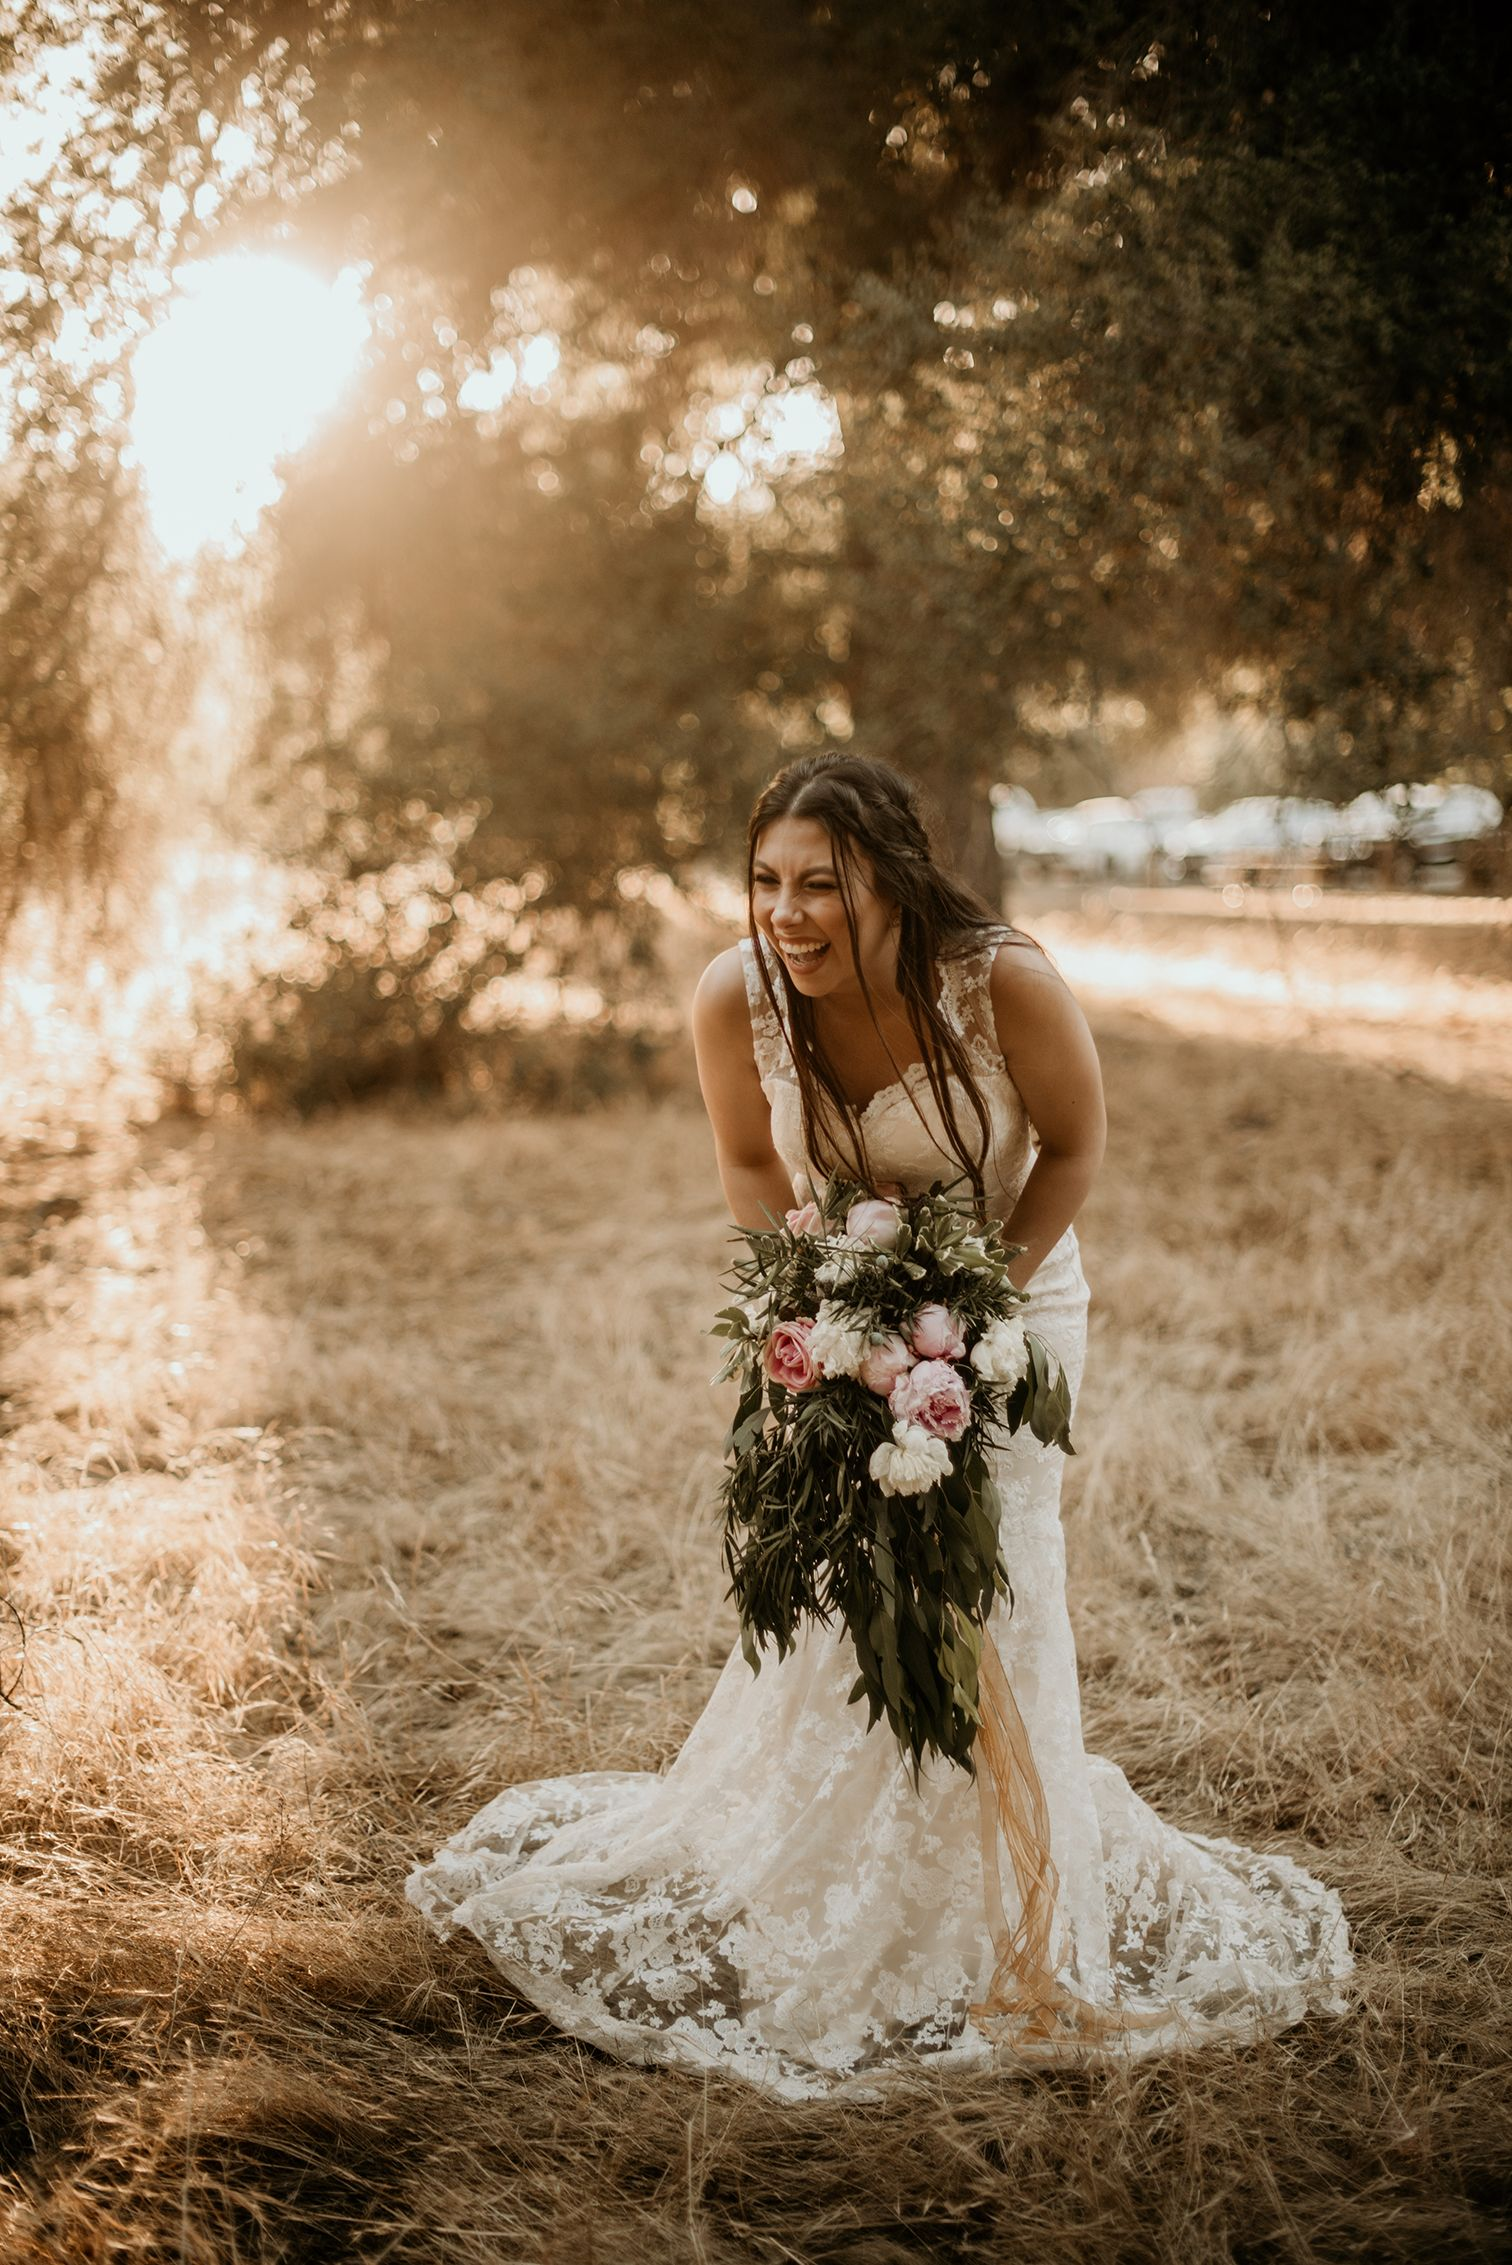 A southern california outdoor wedding during sunset the bride